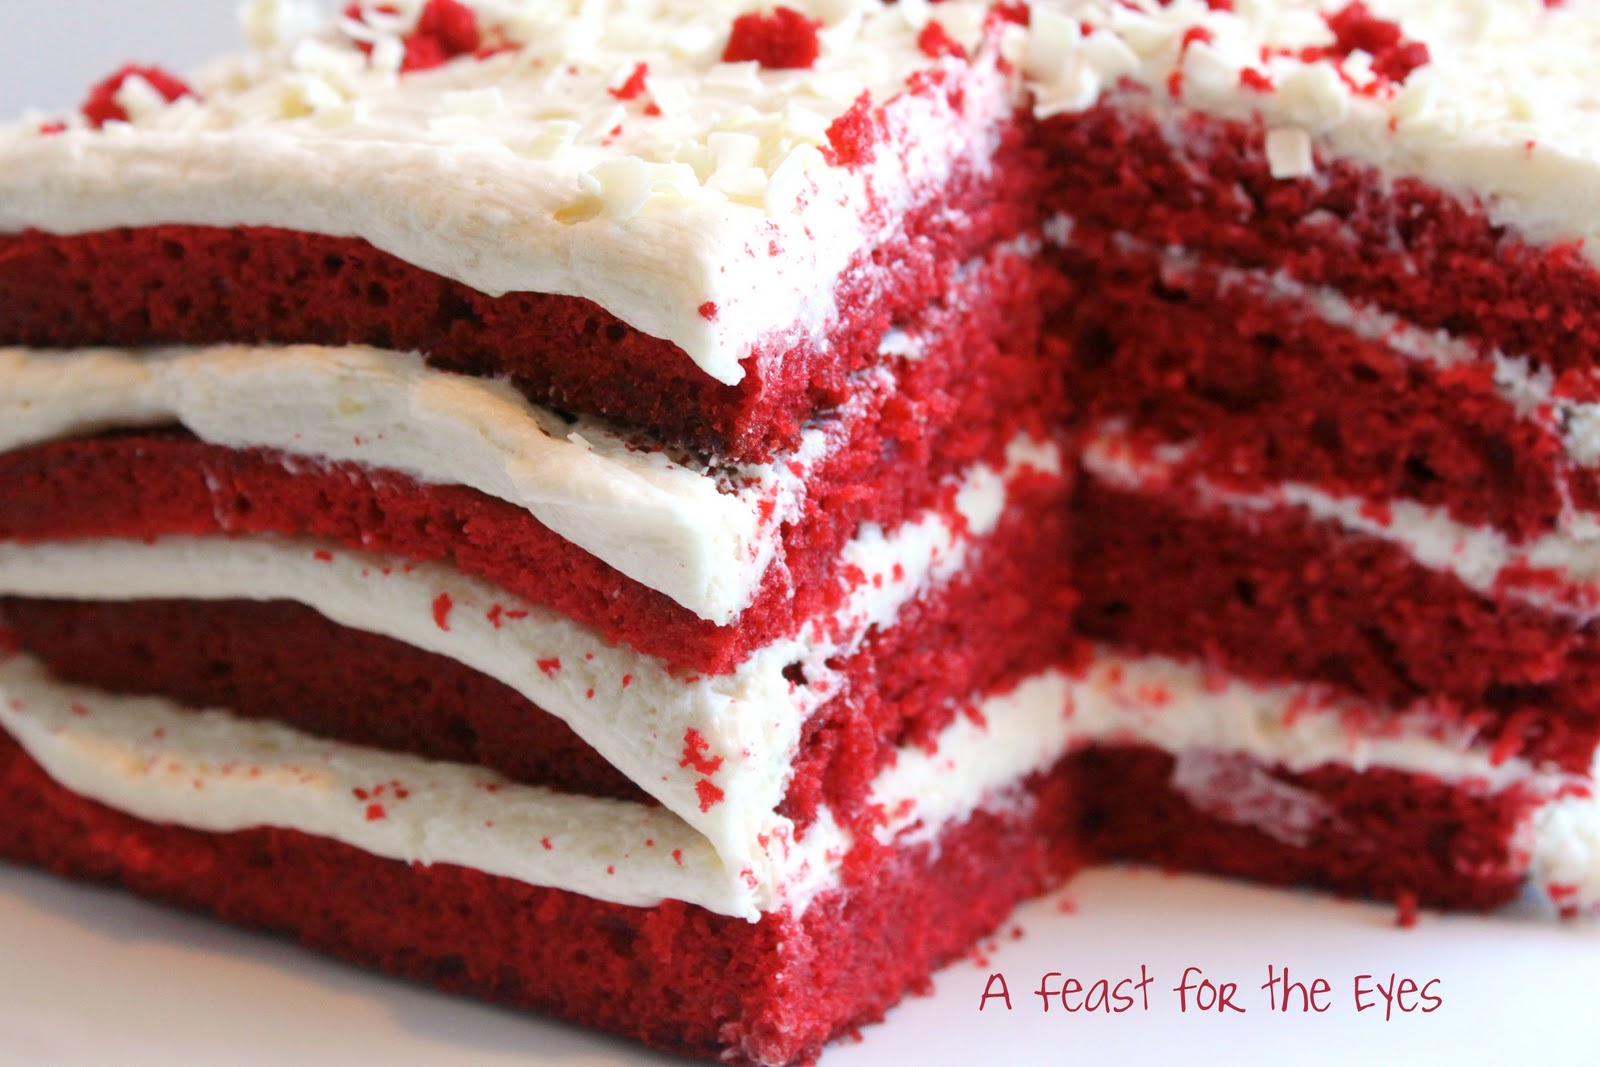 Cake Red Velvet White Chocolate : A Feast for the Eyes: Red Velvet Cake with White Chocolate ...